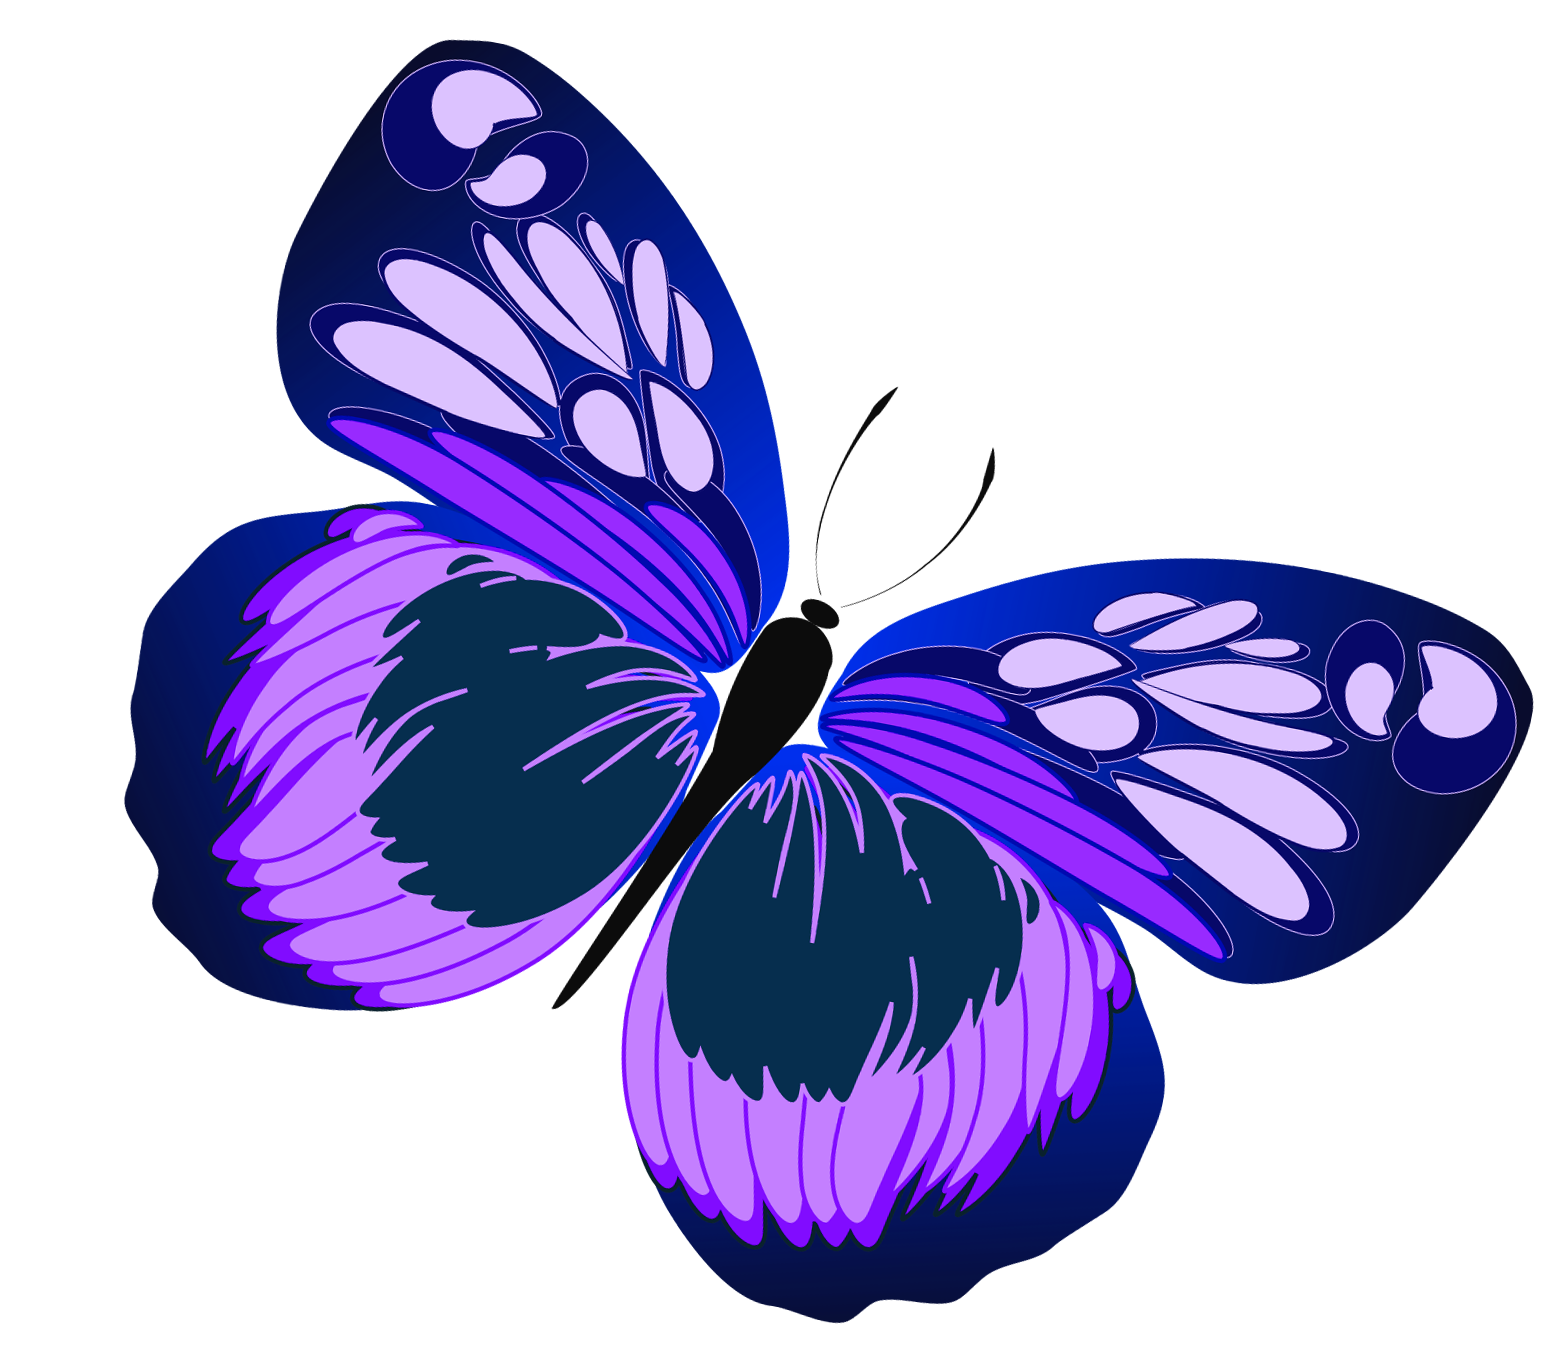 Butterfly Line Drawing Stock Images RoyaltyFree Images